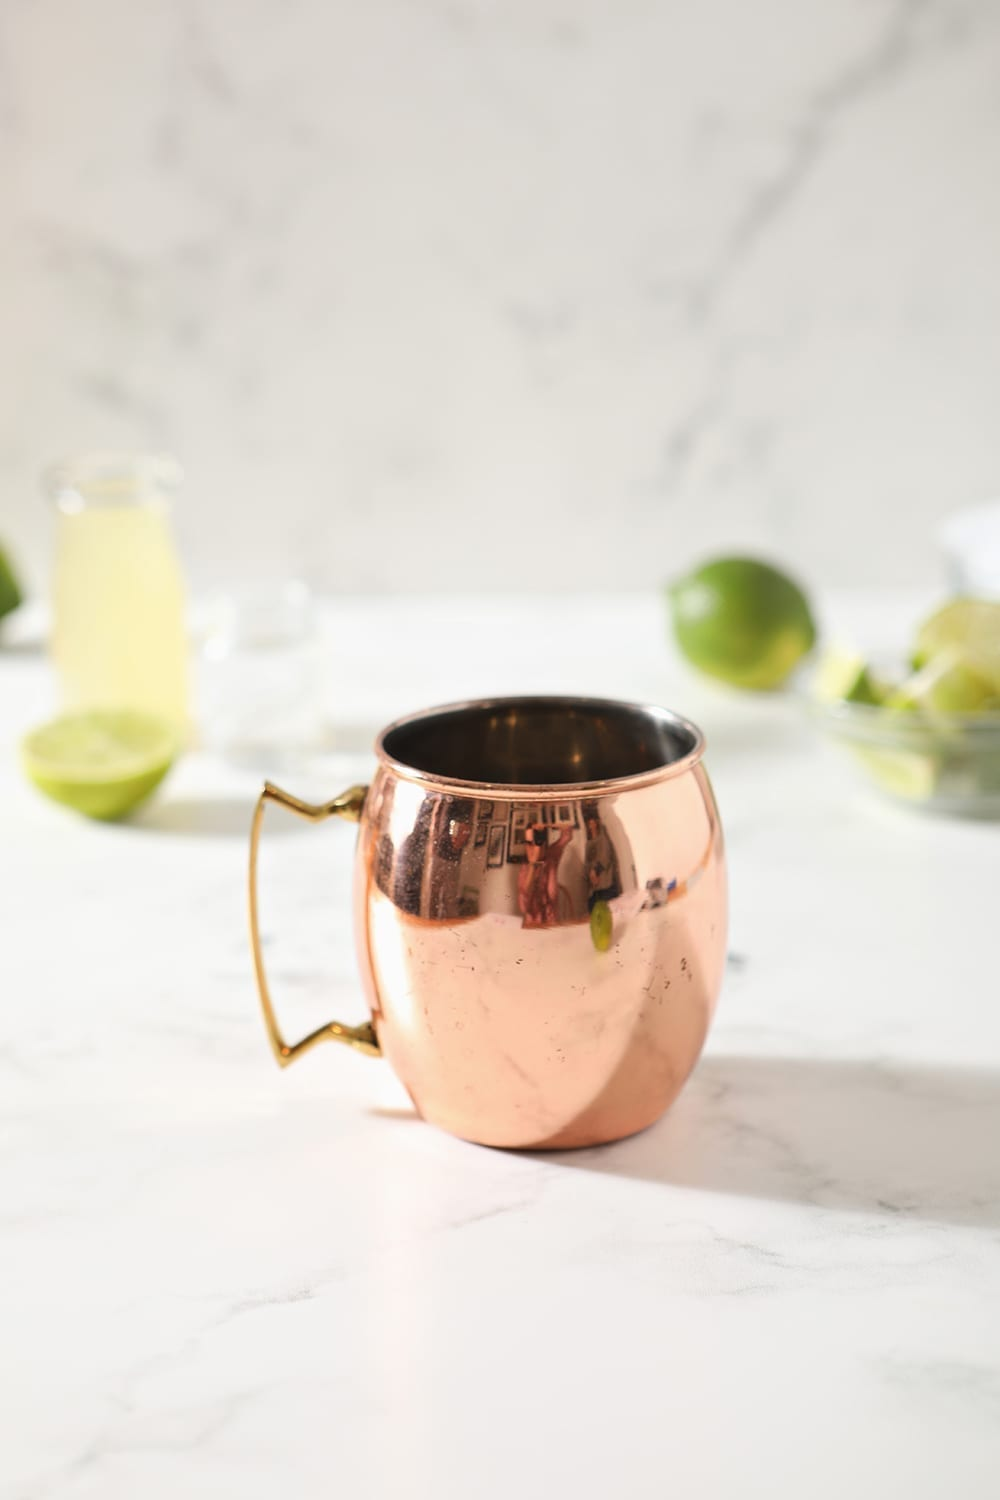 A copper mug sits on a marble countertop with drink ingredients scattered around it